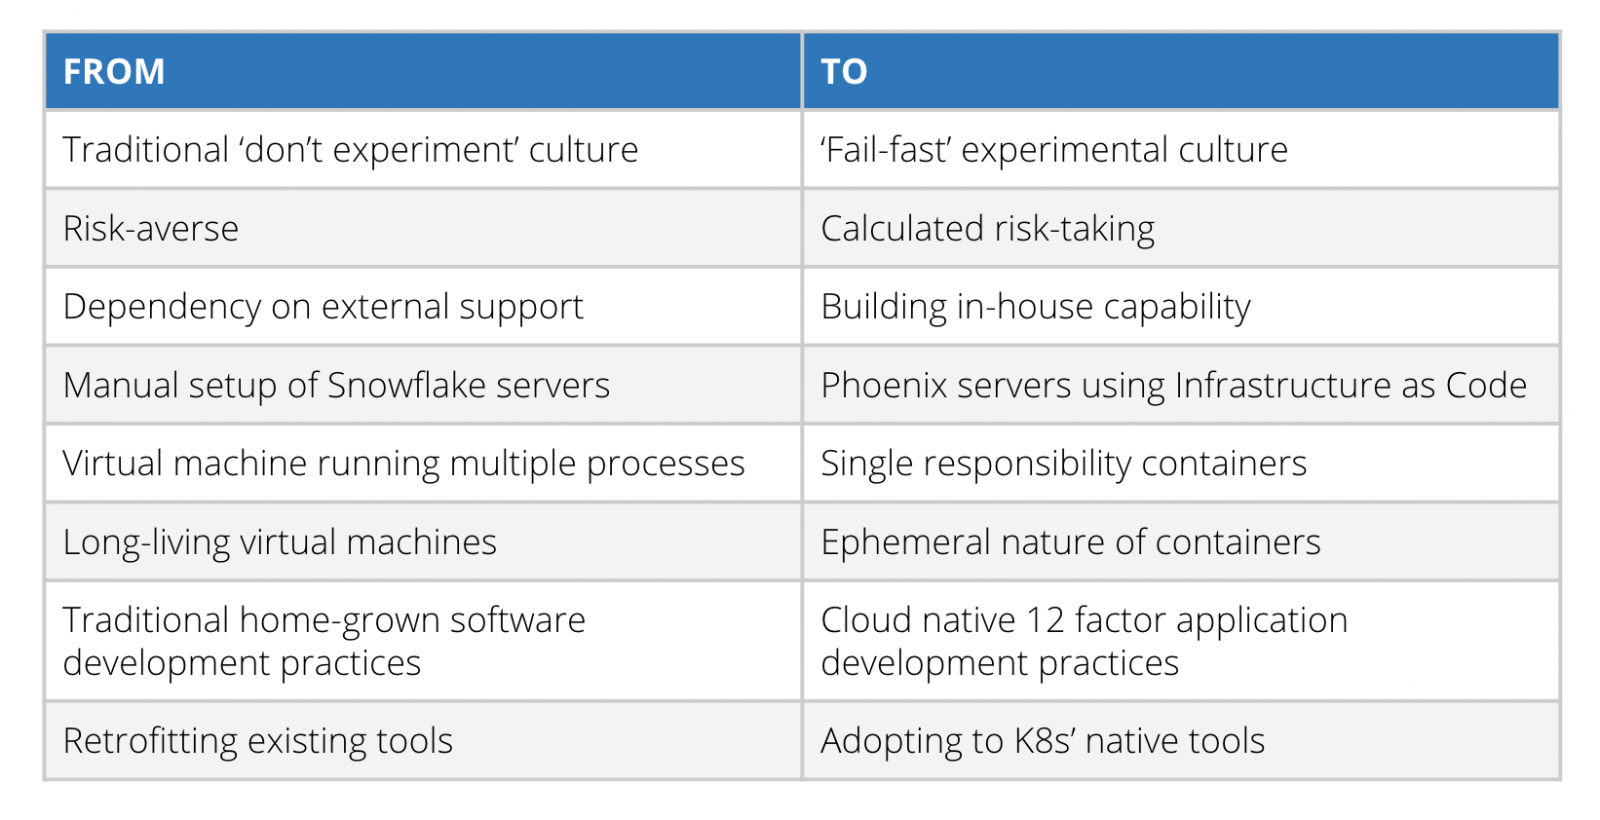 a table that summarizes the shift from Traditional 'don't experiment' culture to 'Fail-fast' experimental culture and similar shifts